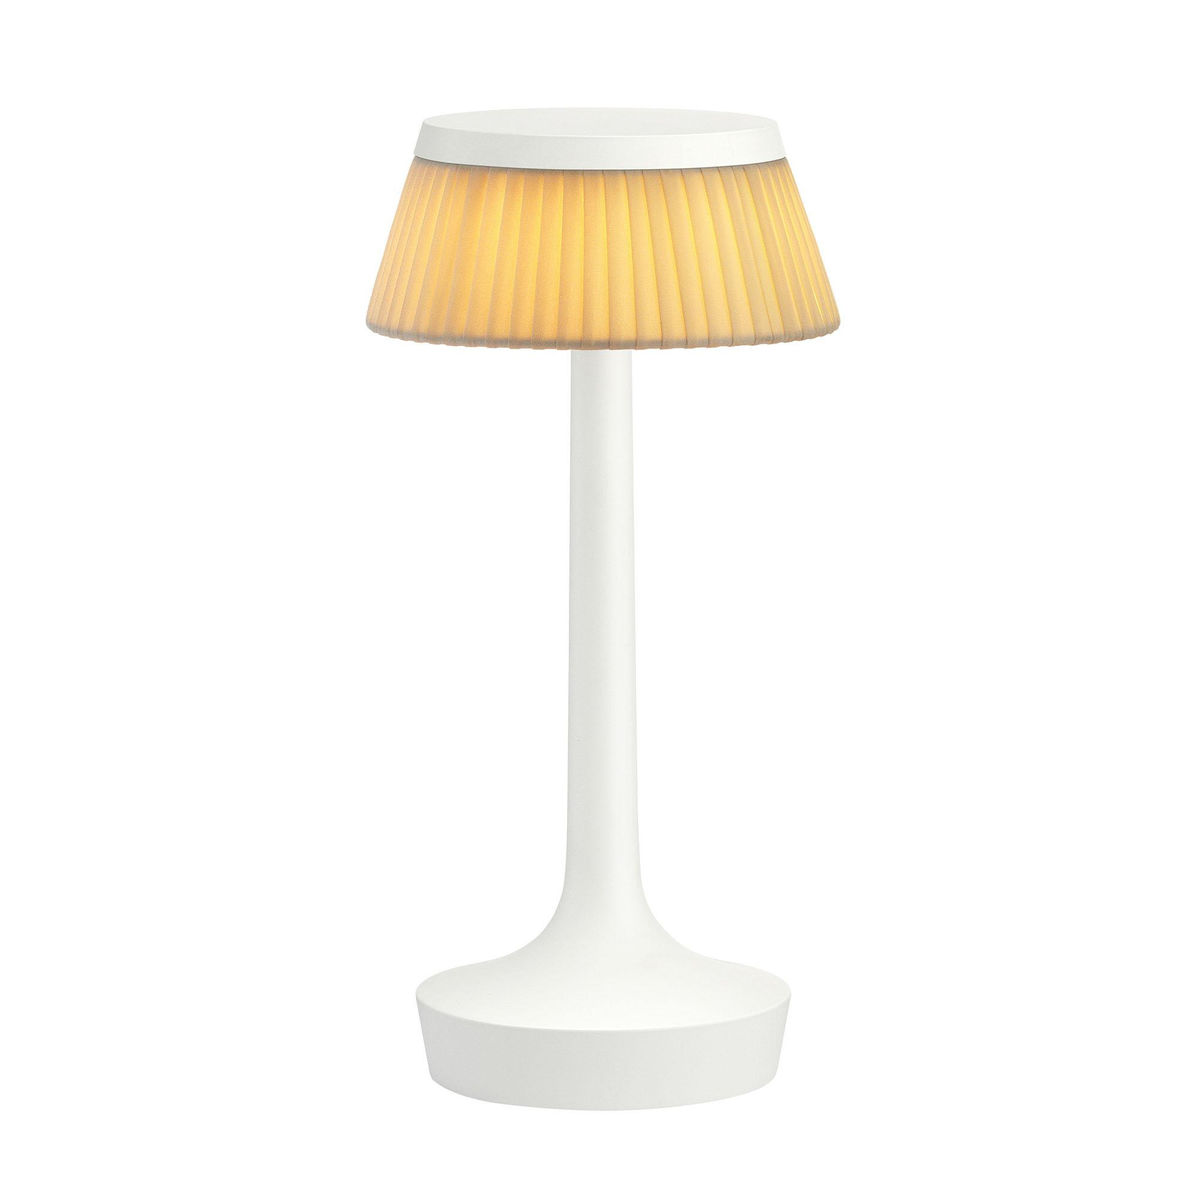 Bon jour unplugged led table lamp white flos ambientedirect flos bon jour unplugged led table lamp white geotapseo Images